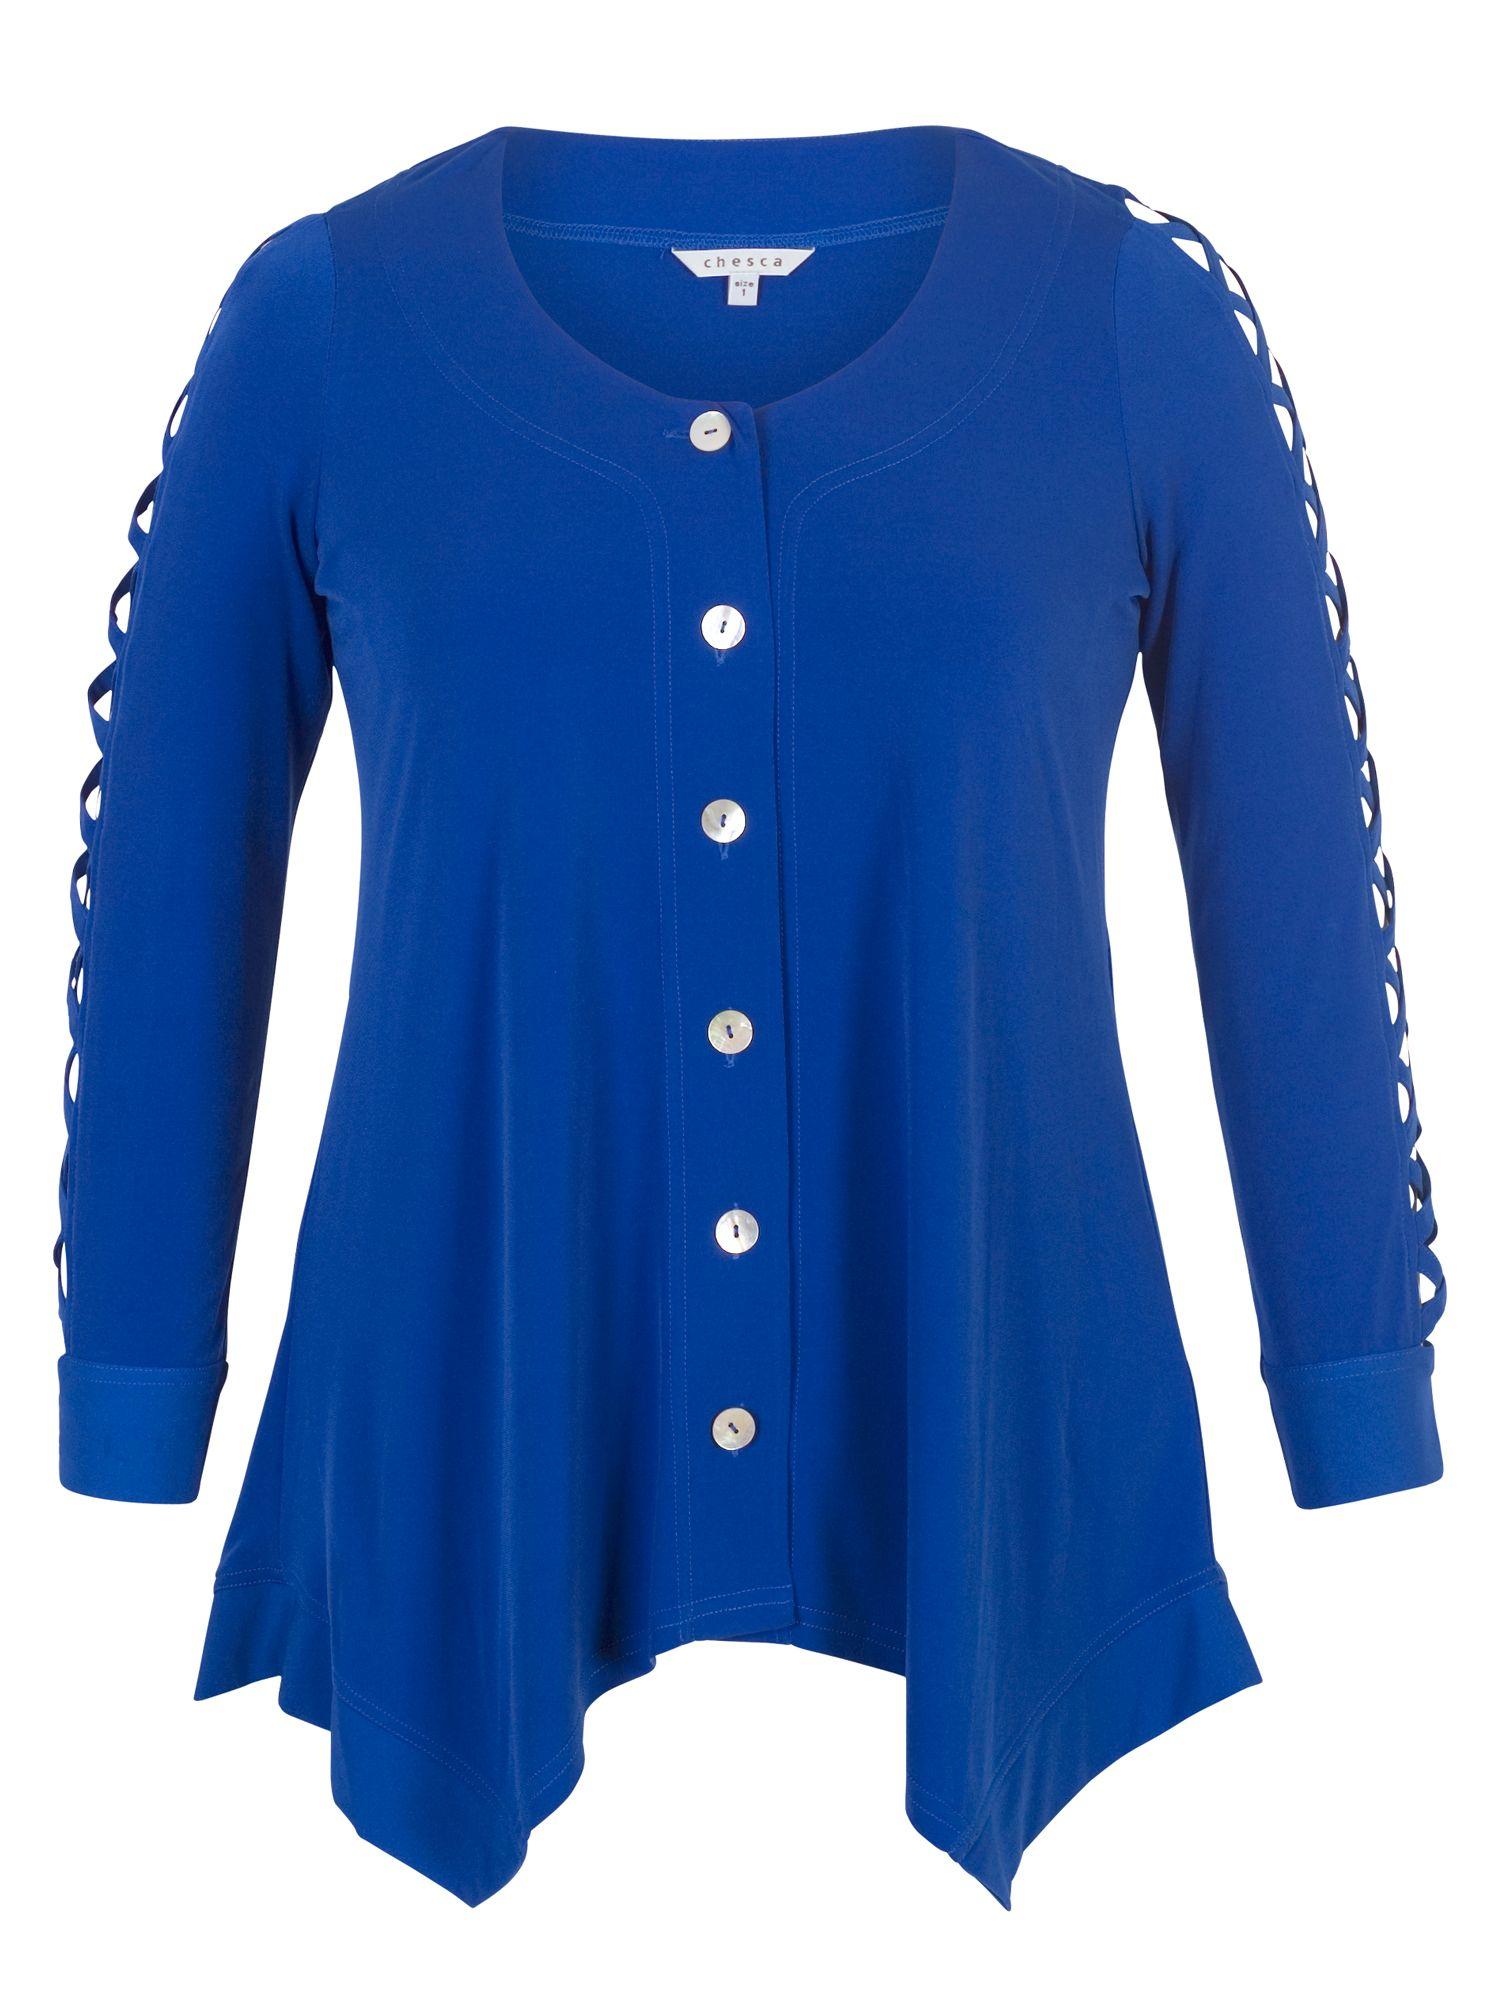 Chesca Criss Cross Sleeve Tunic, Blue